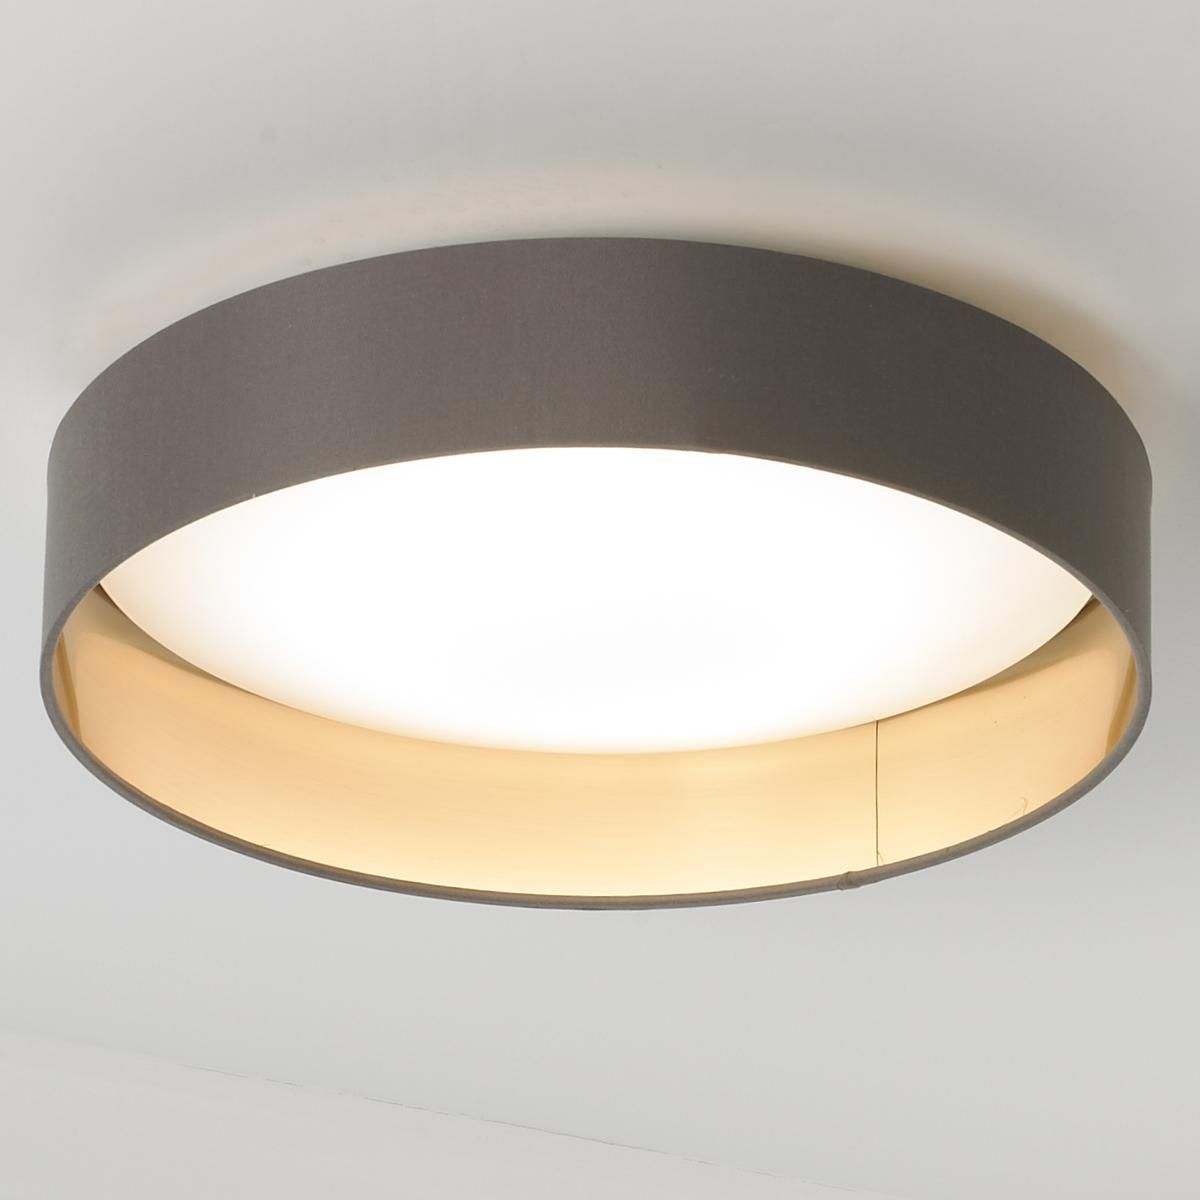 Modern Ringed Led Ceiling Light Lighting Ideas